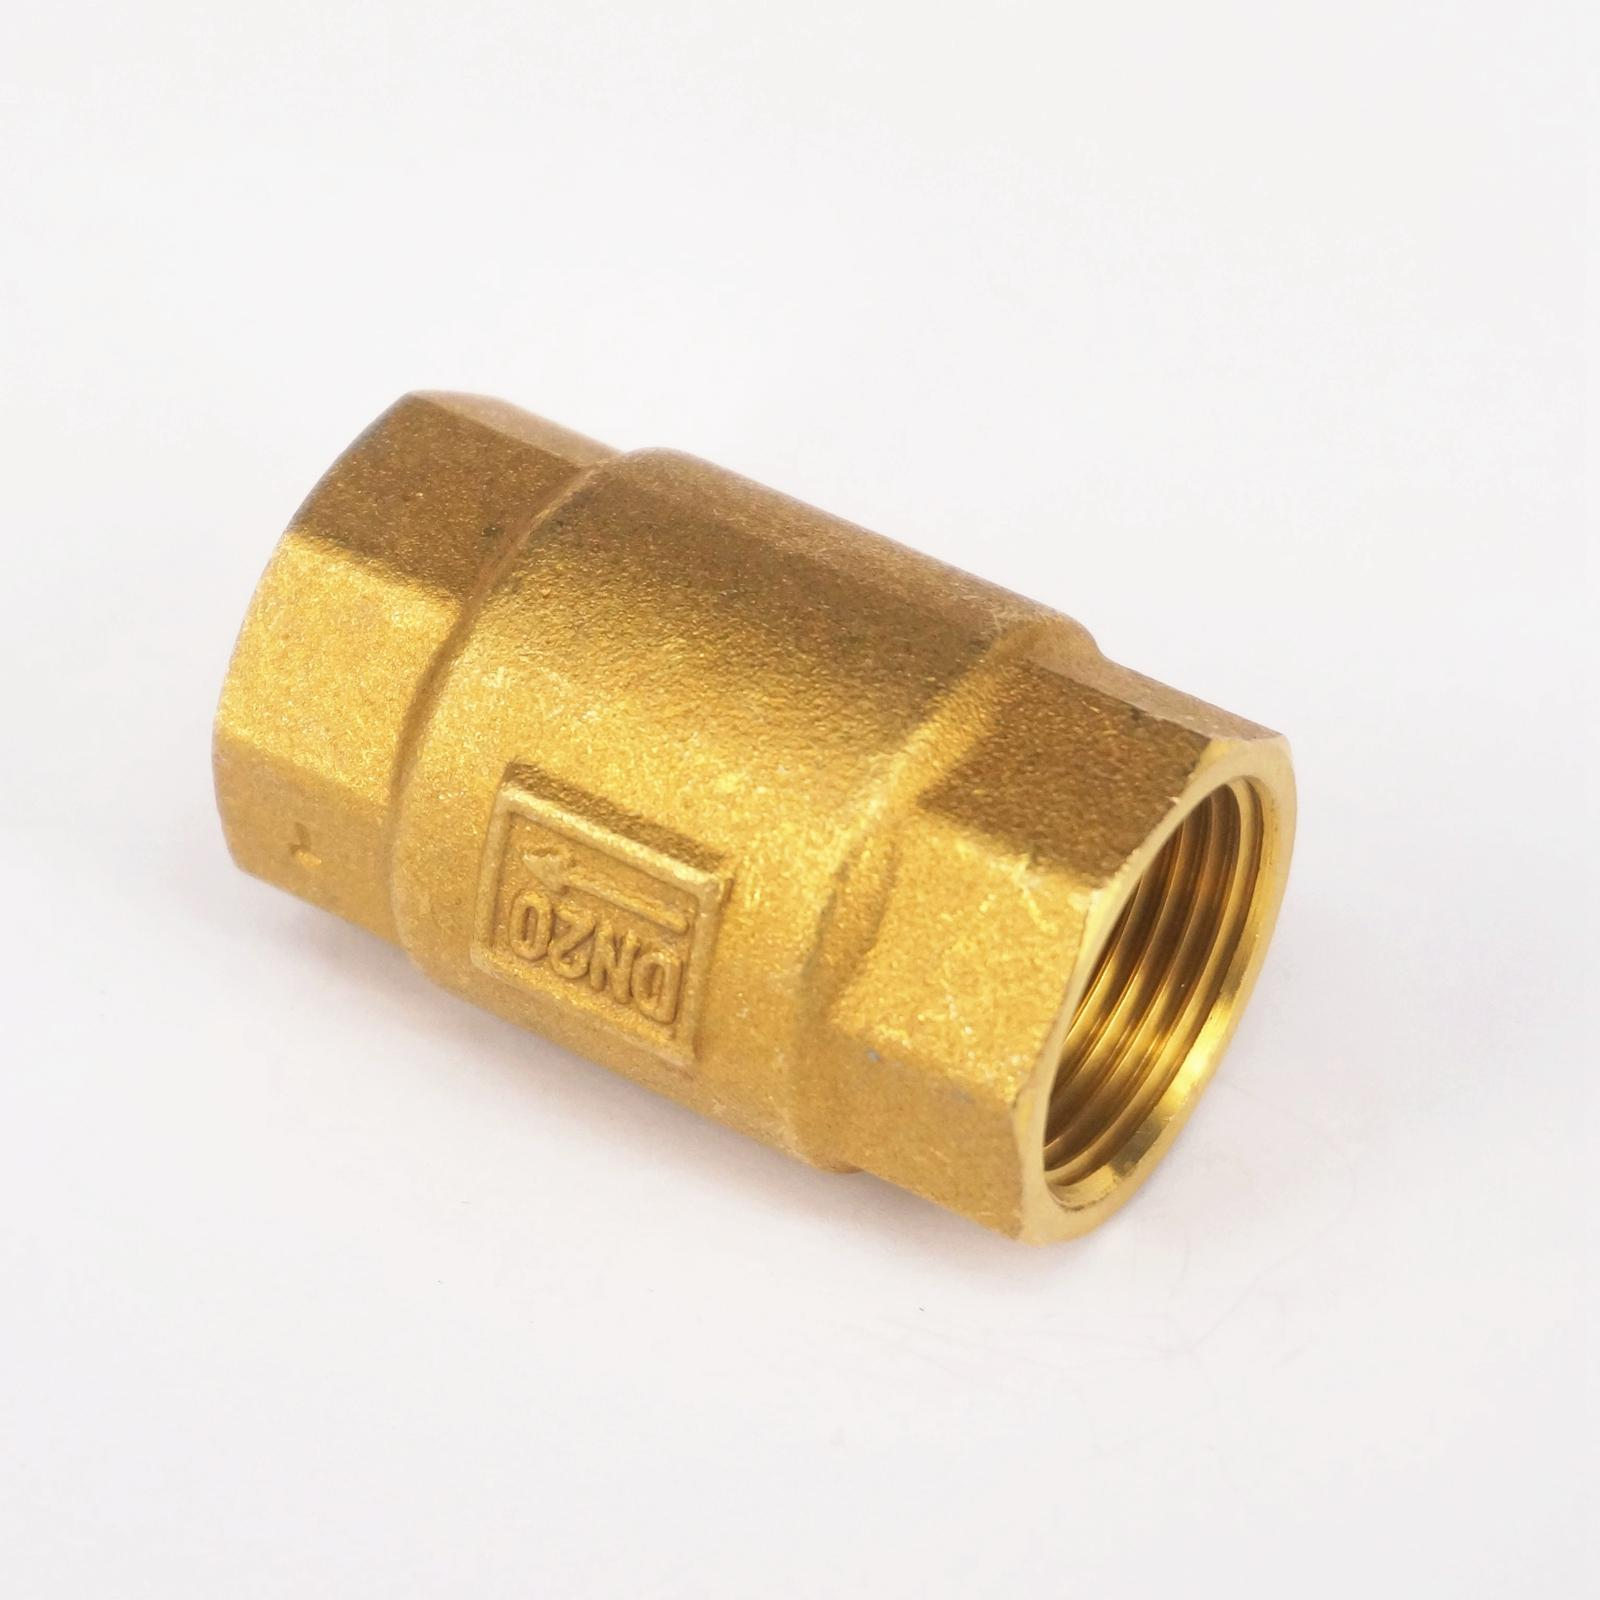 Brass check valve In-Line Spring Non Return 3/4 BSP female to 3/4 BSP female Threaded for water pipe Plumbing